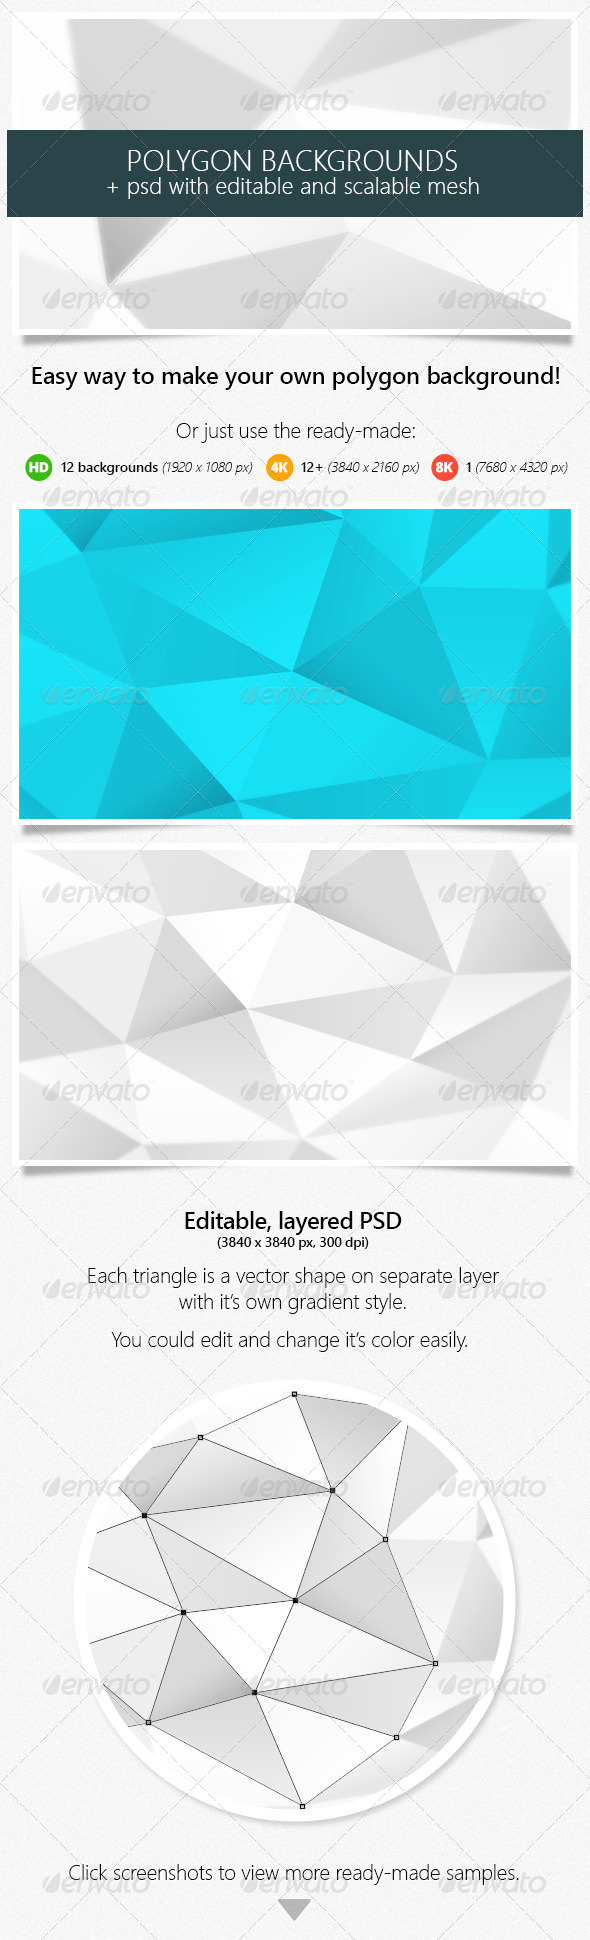 GraphicRiver Polygon Backgrounds High Resolution with PSD 8005958